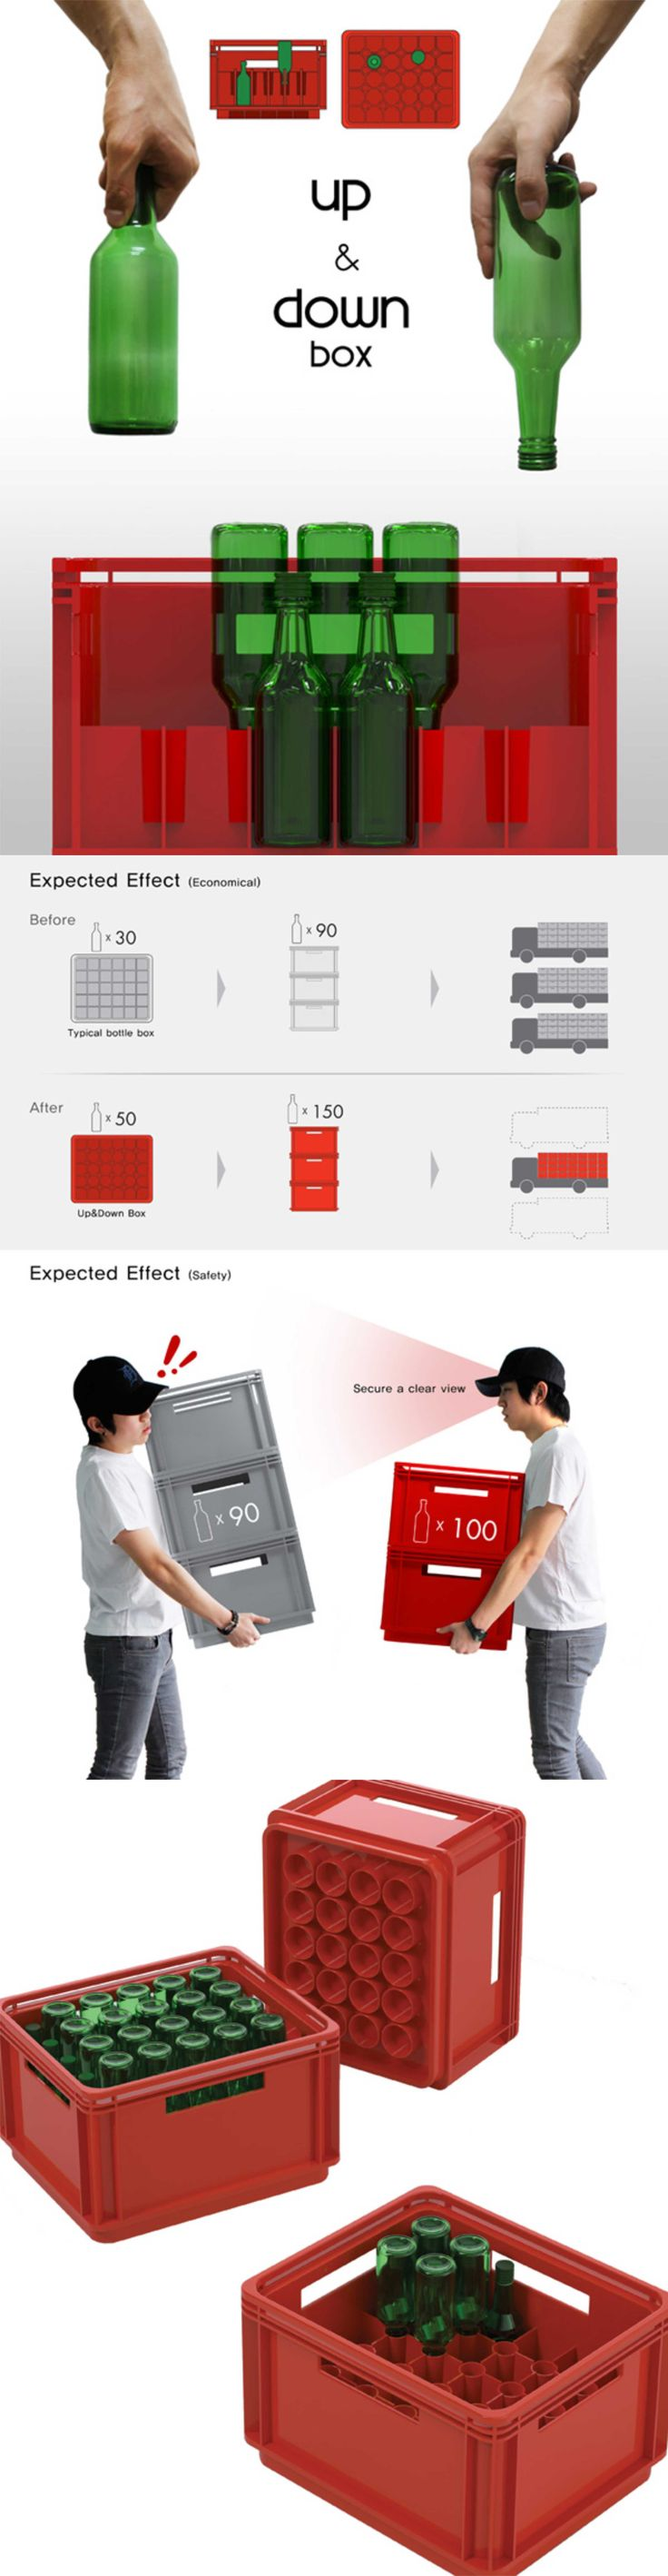 Up & Down Box is a 2013 red dot award: design concept winner.